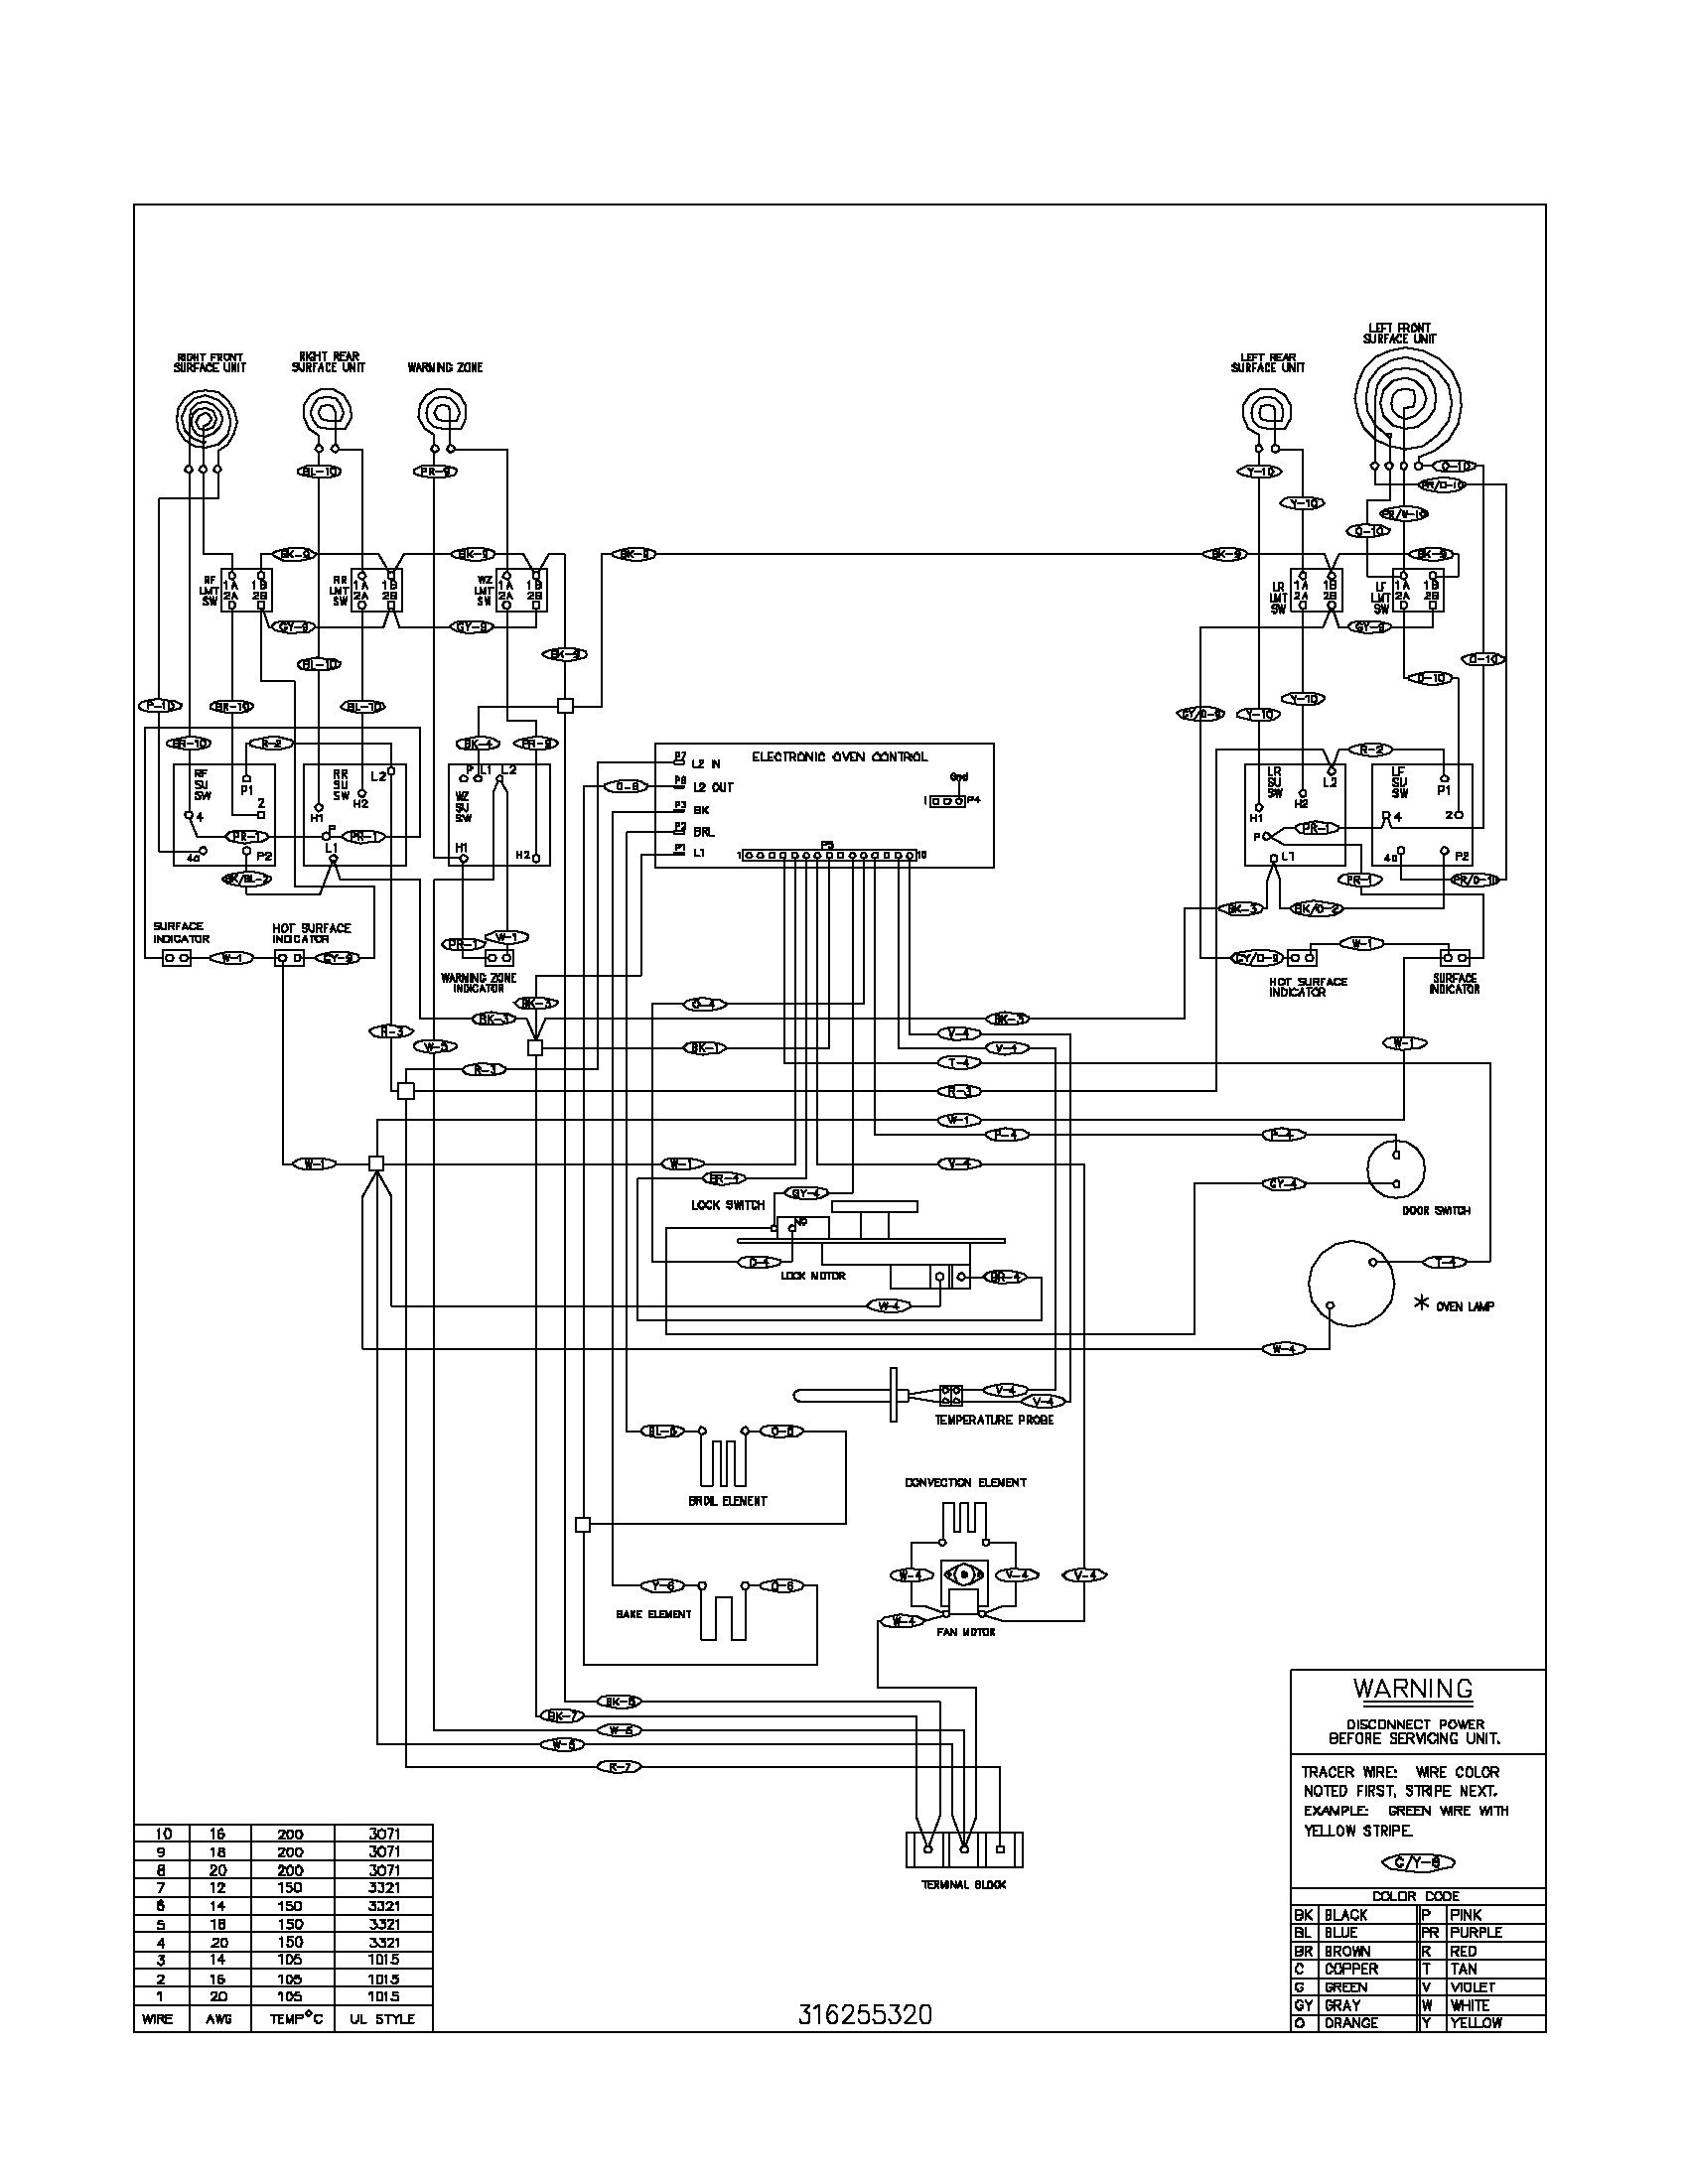 Whirlpool Fridge Wiring Diagram Simple Ge Refrigerator Wiring Diagram Ice Maker Fresh Wx15x12 1 2 Od Flared